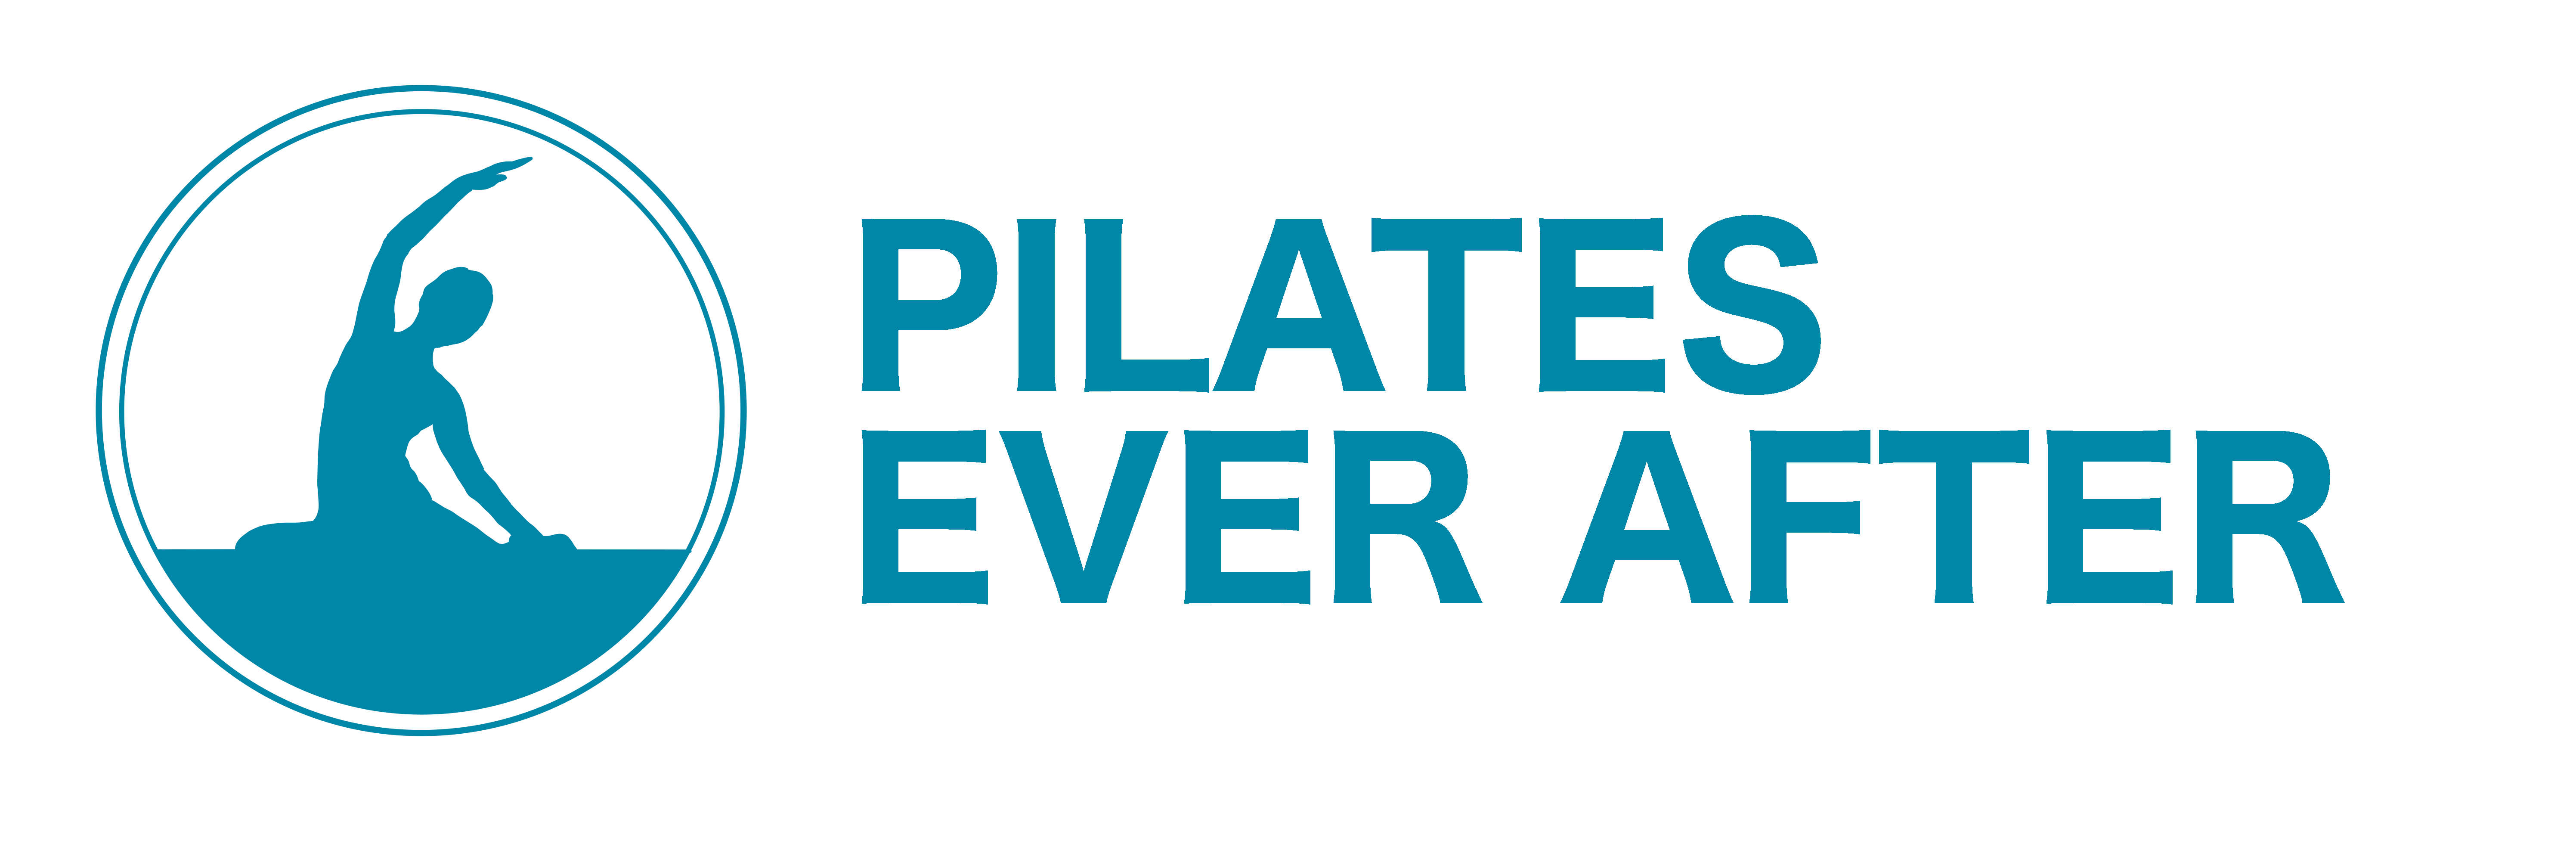 Pilates Ever After